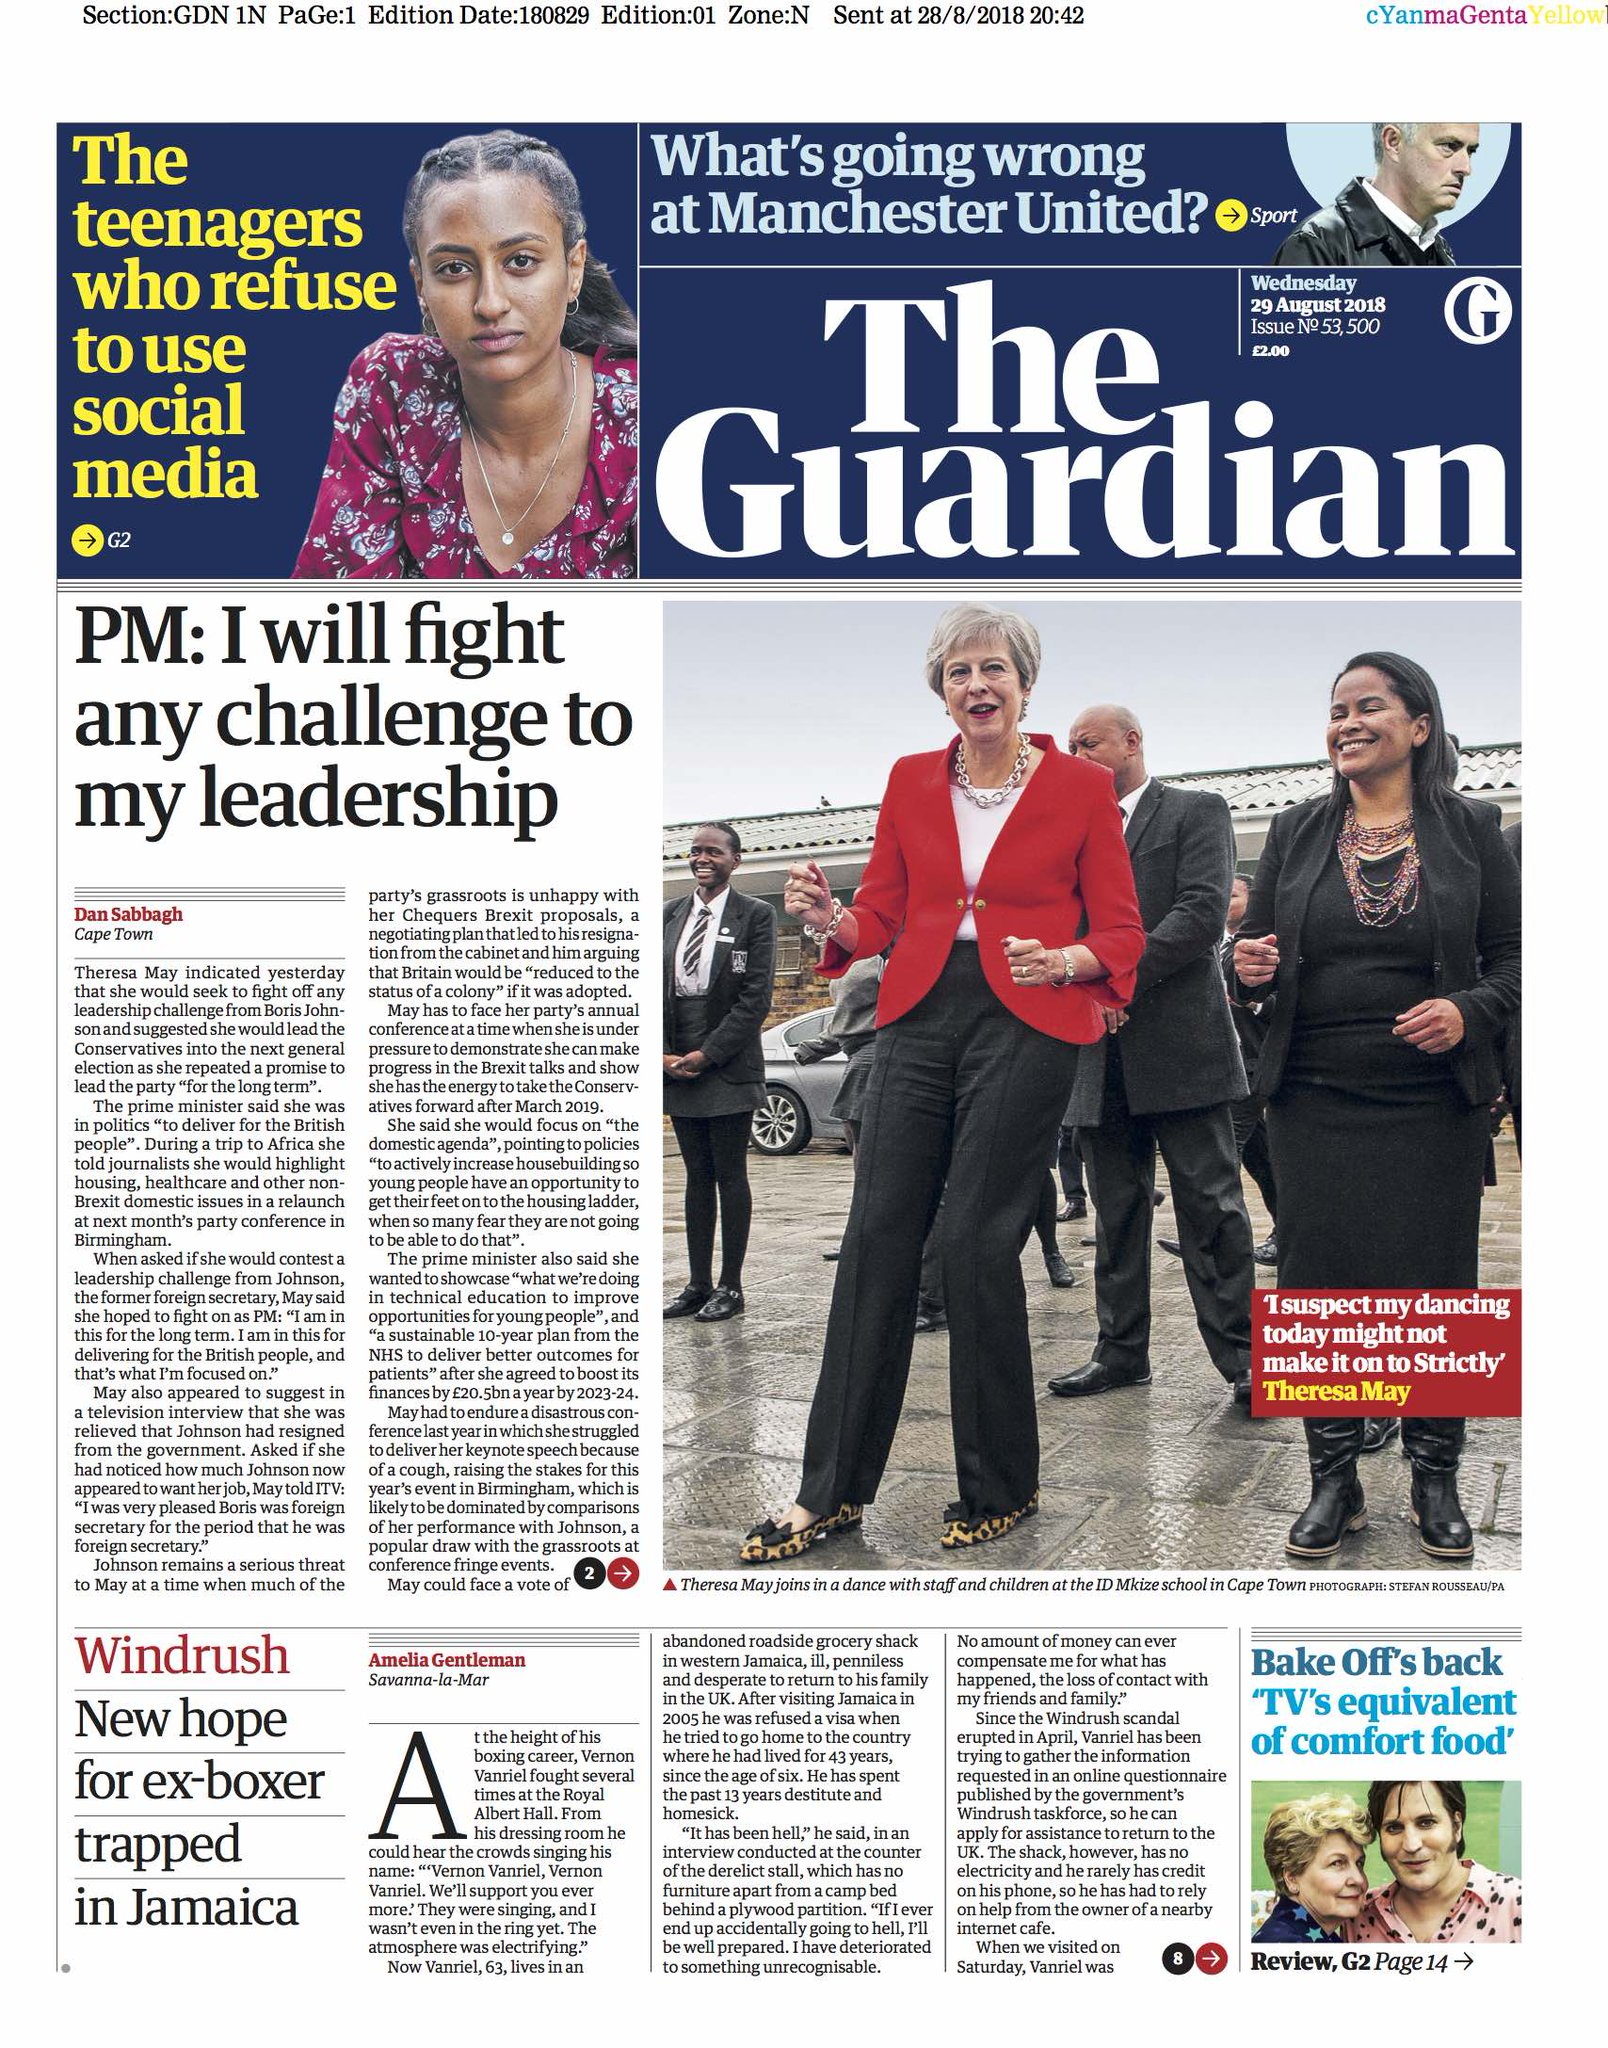 Guardian front page, Wednesday 29 August 2018: PM: I will fight any challenge to my leadership https://t.co/FP4FNMBAg8